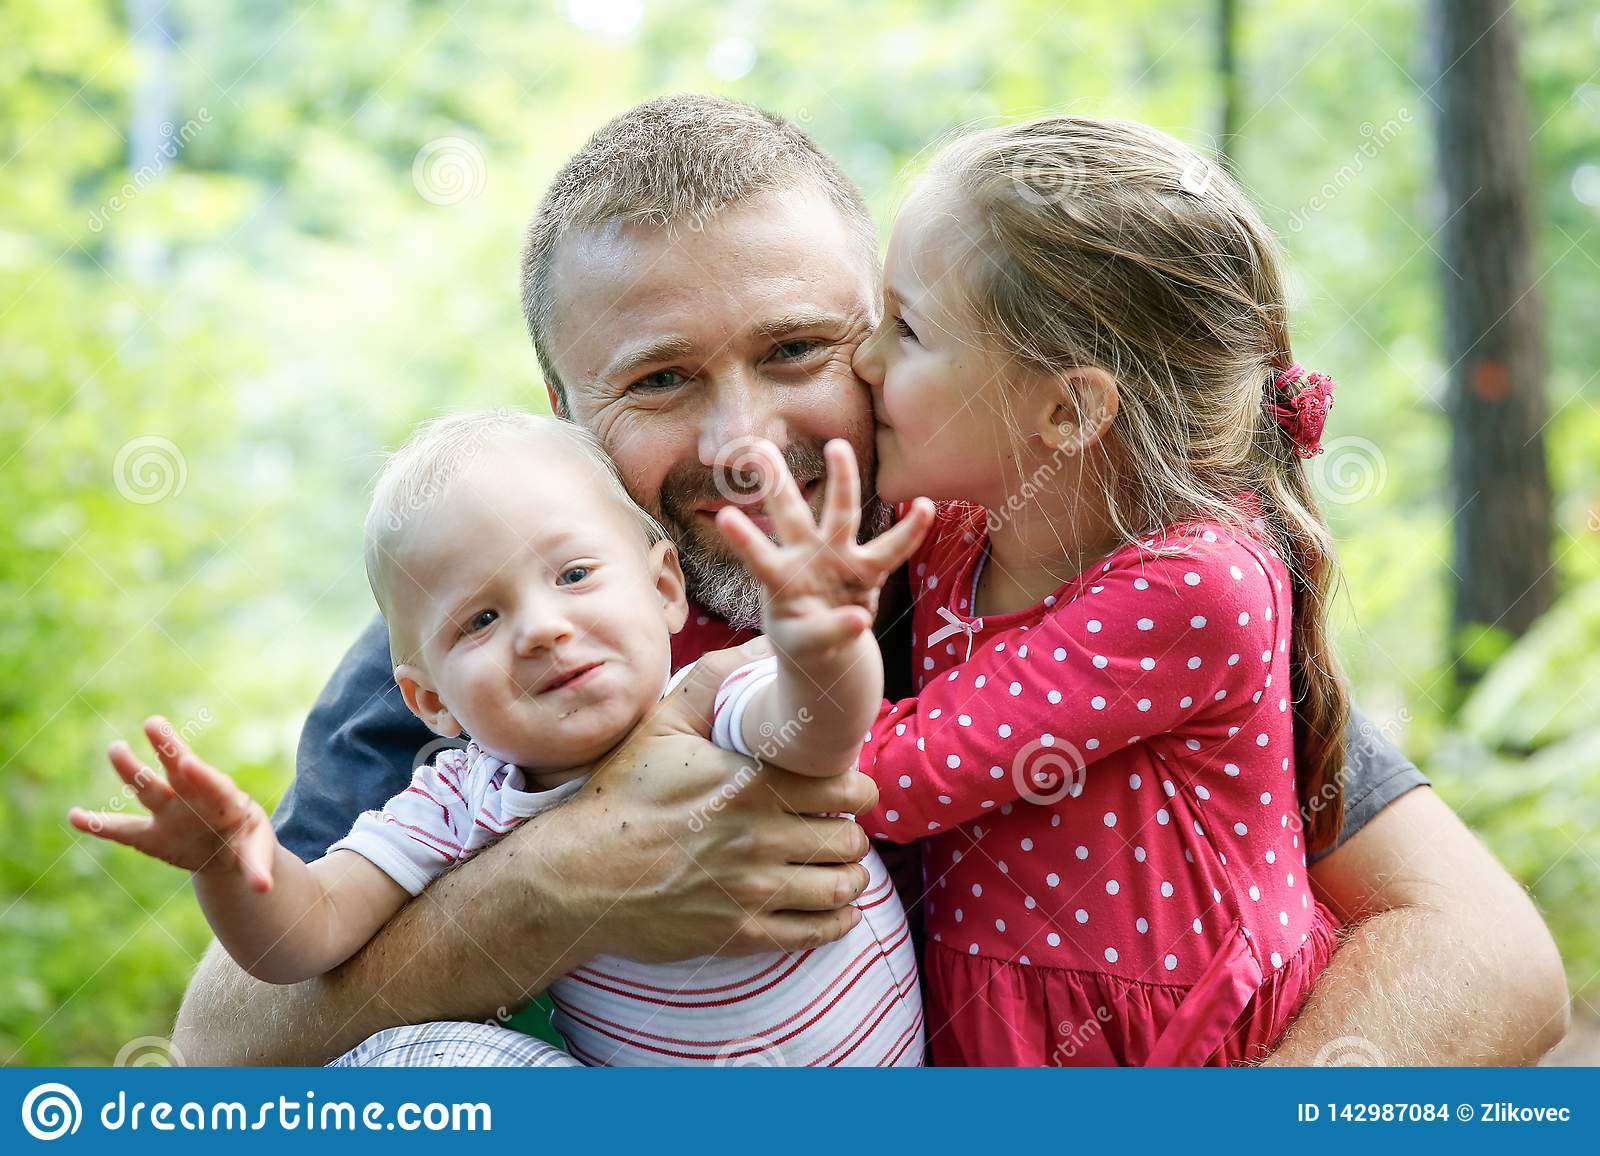 Devoted father hugging his son and daughter, enjoying the outdoor